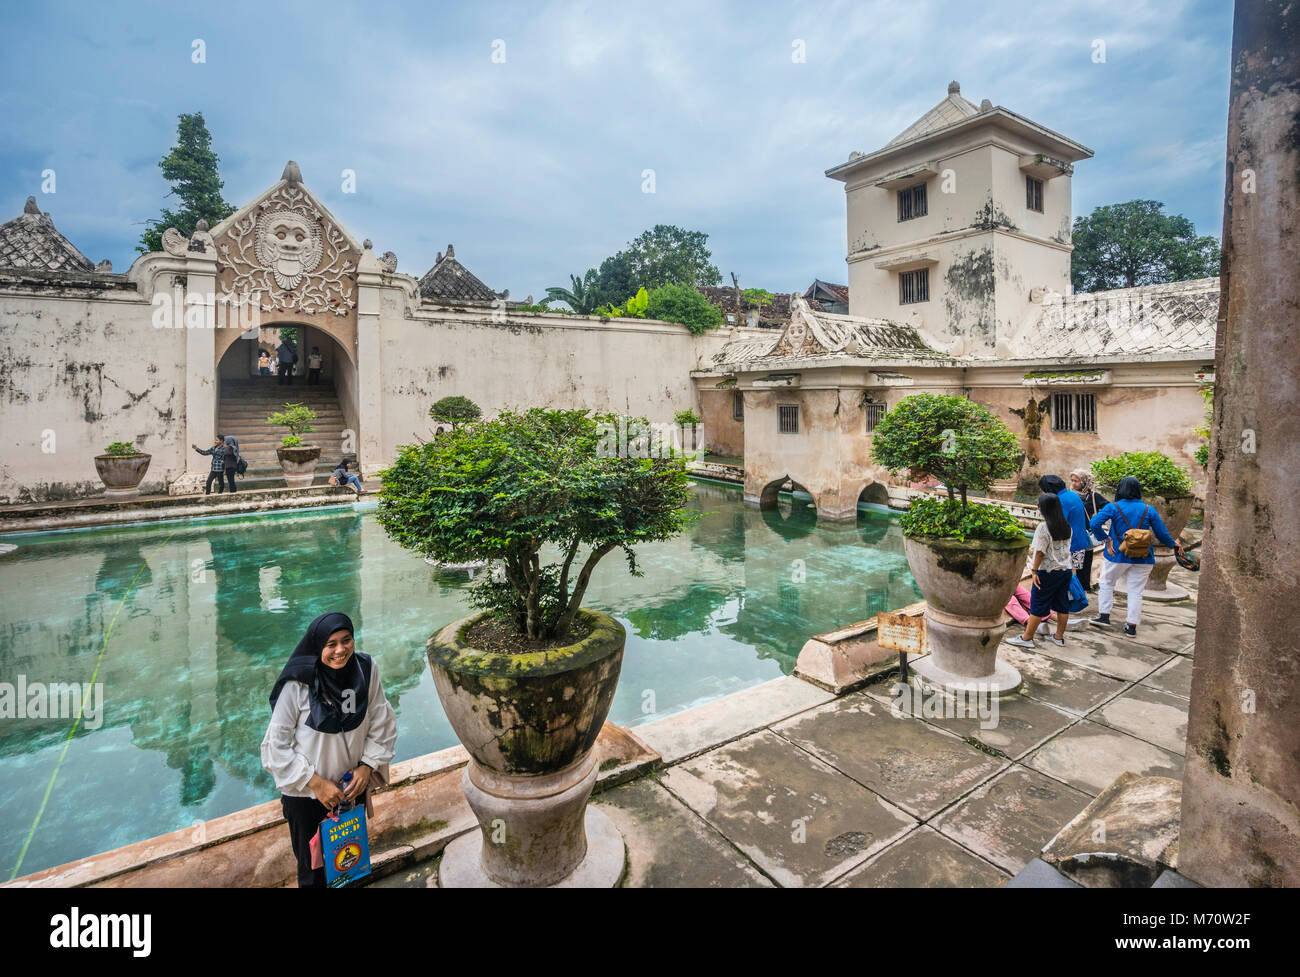 Umbul Pasiraman bathing complex with tower from where the sultan observed the bathing women at the Taman Sari Water - Stock Image